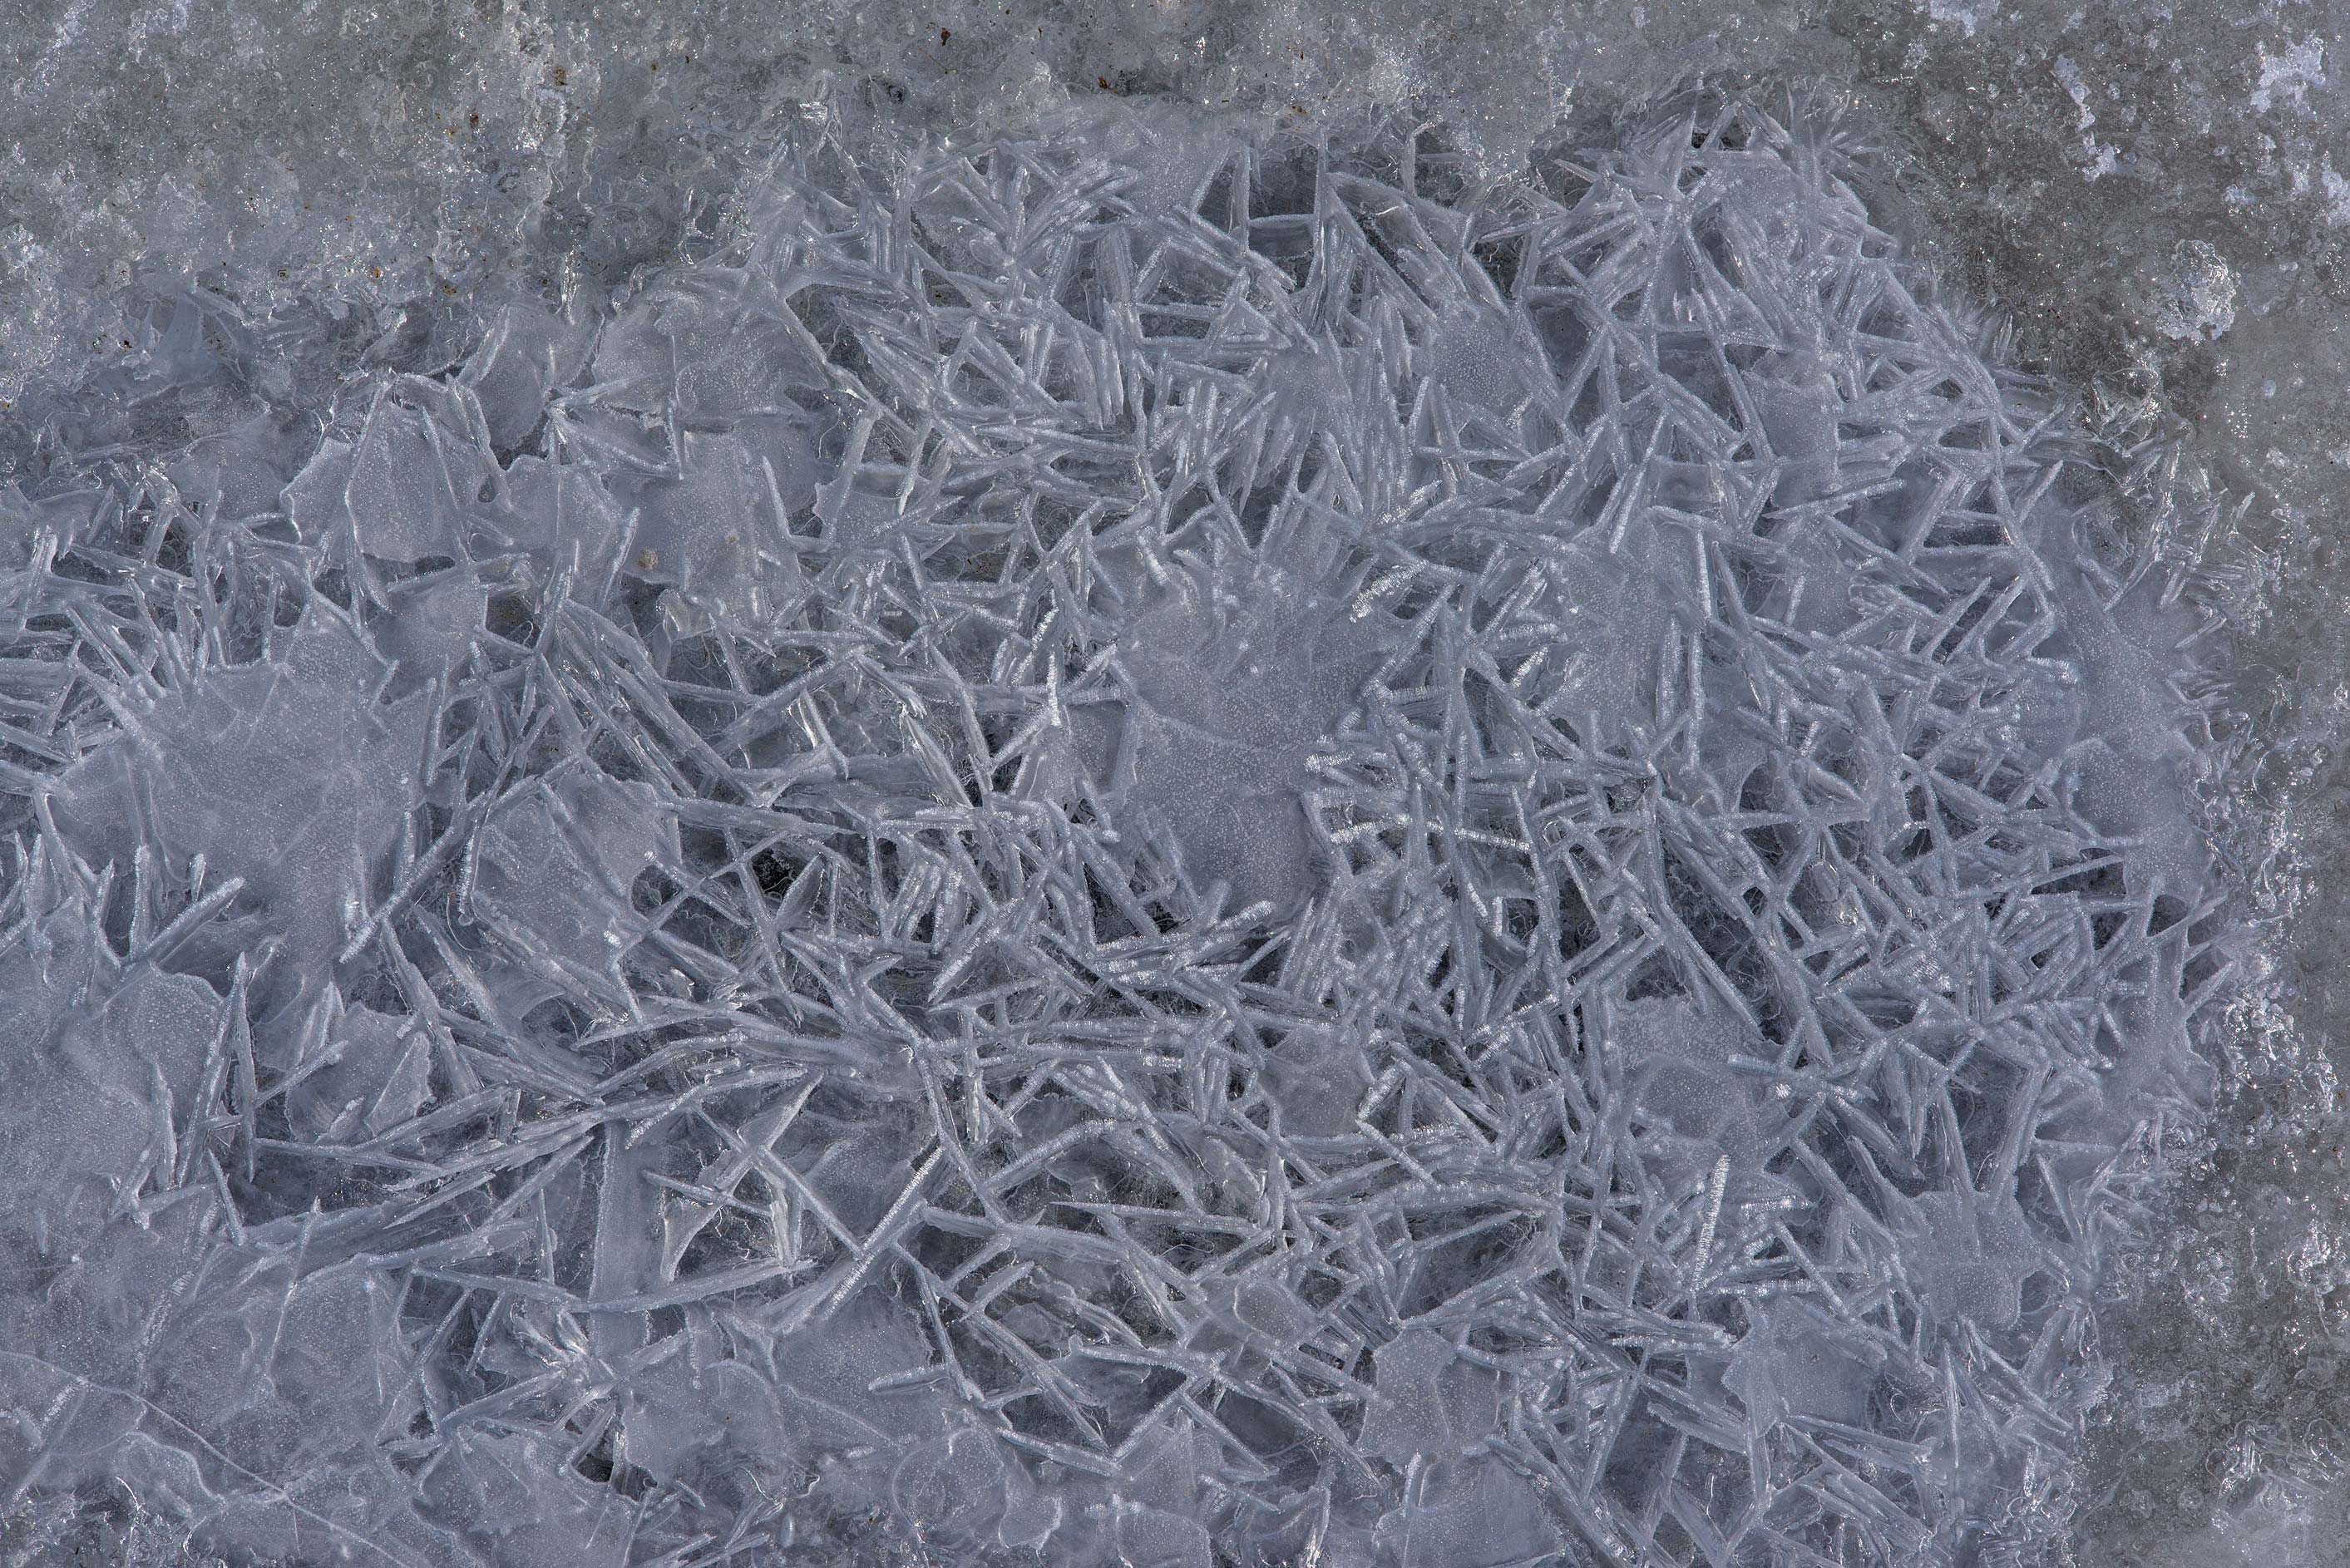 Lacy ice crystals on frozen Gulf of Finland in Solnechnoe, west from St.Petersburg. Russia